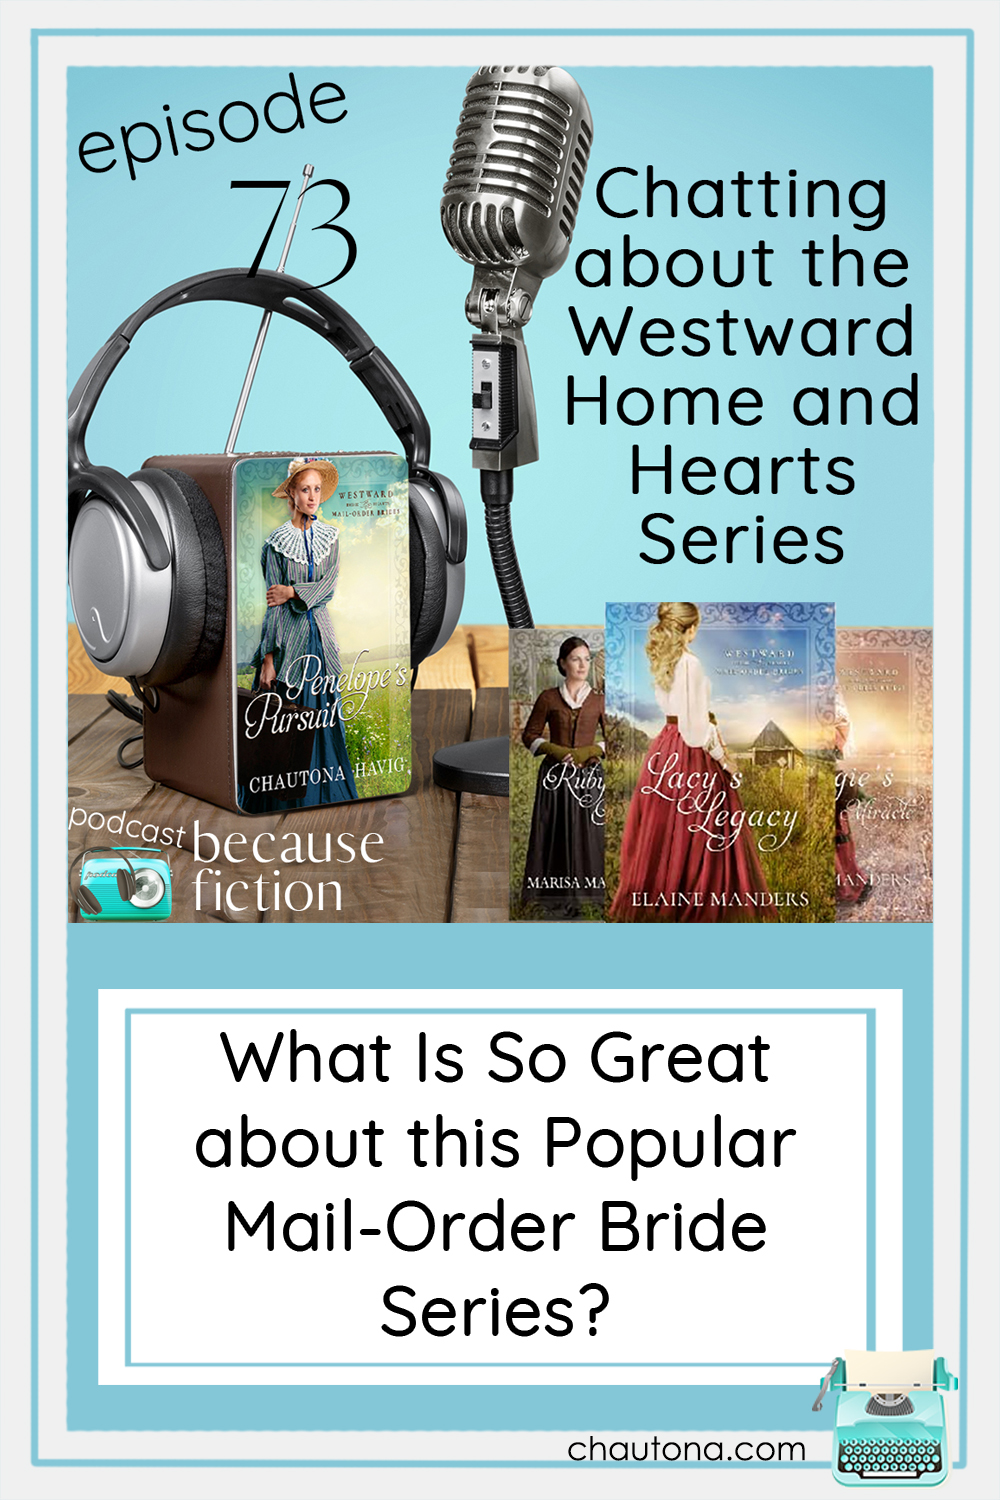 In today's episode, I tell about Westward Home and Hearts Mail-Order Bride series featuring mail-order brides with a twist of suspense. via @chautonahavig